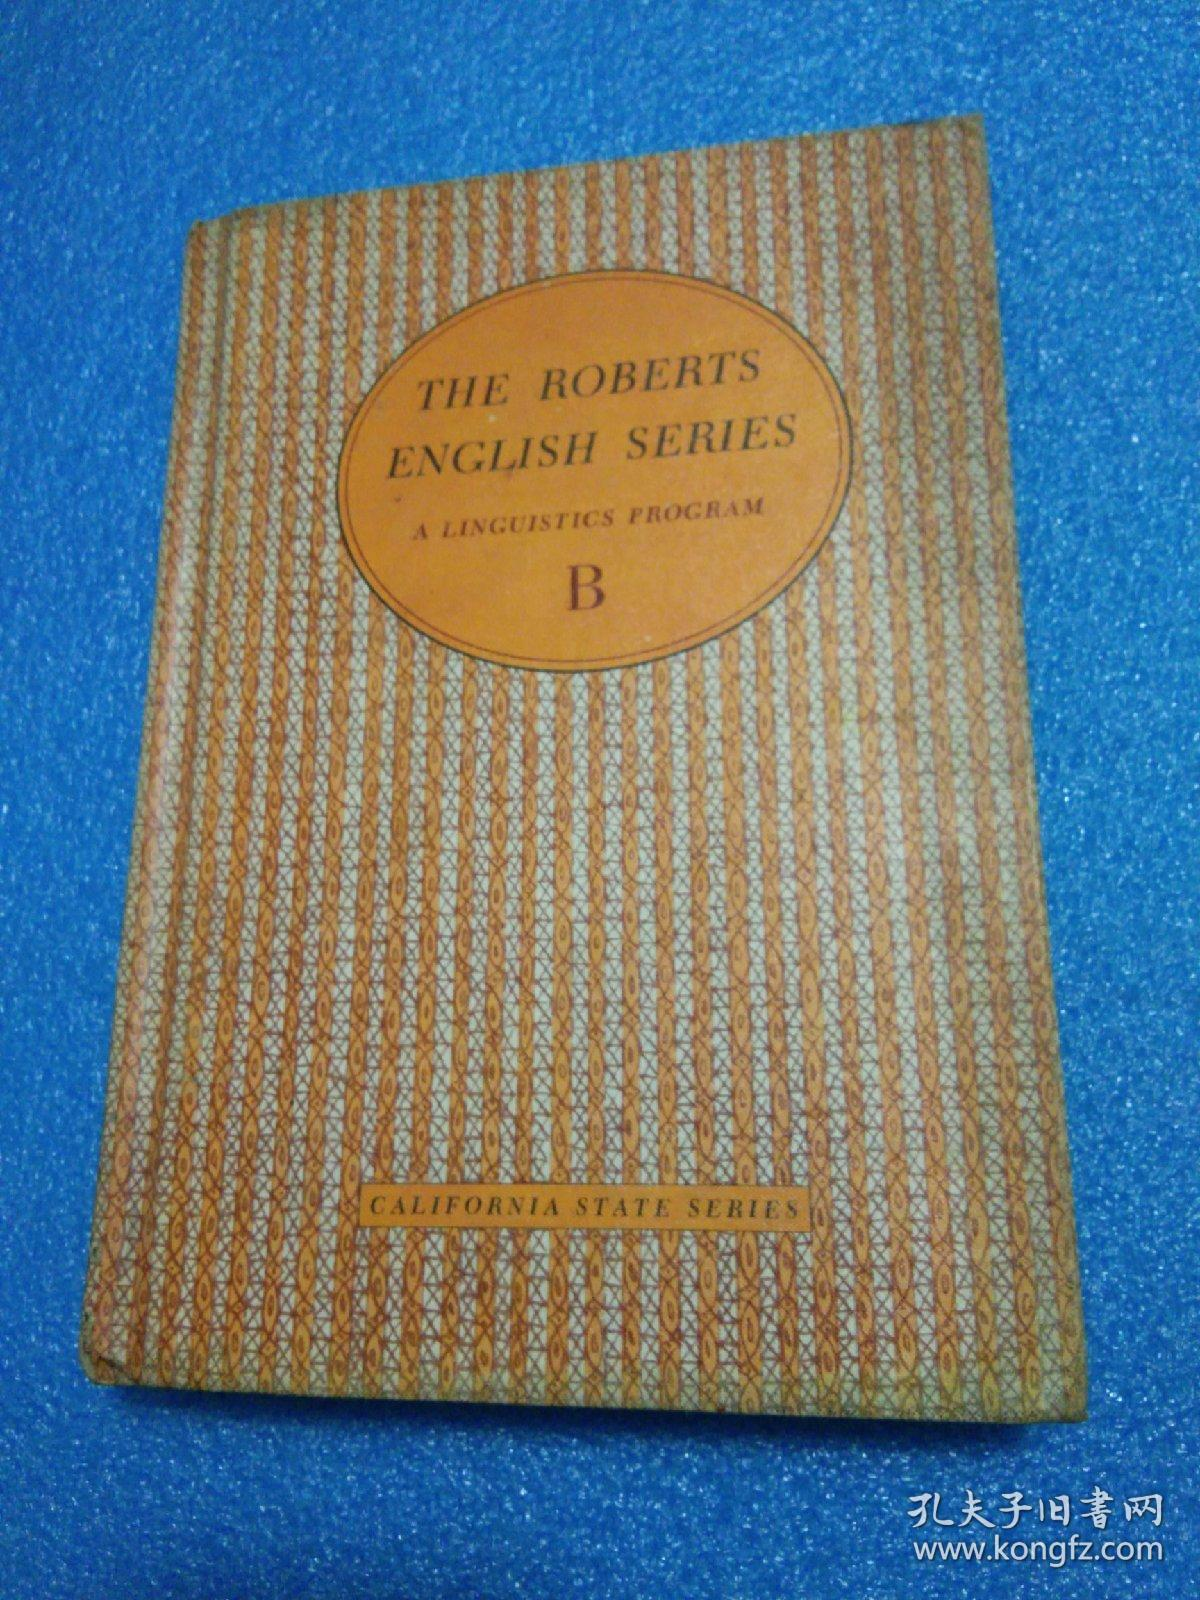 THE ROBERTS ENGLISH SERIES B、C、D 【三本 合售】罗伯茨英语系列 全英文精装